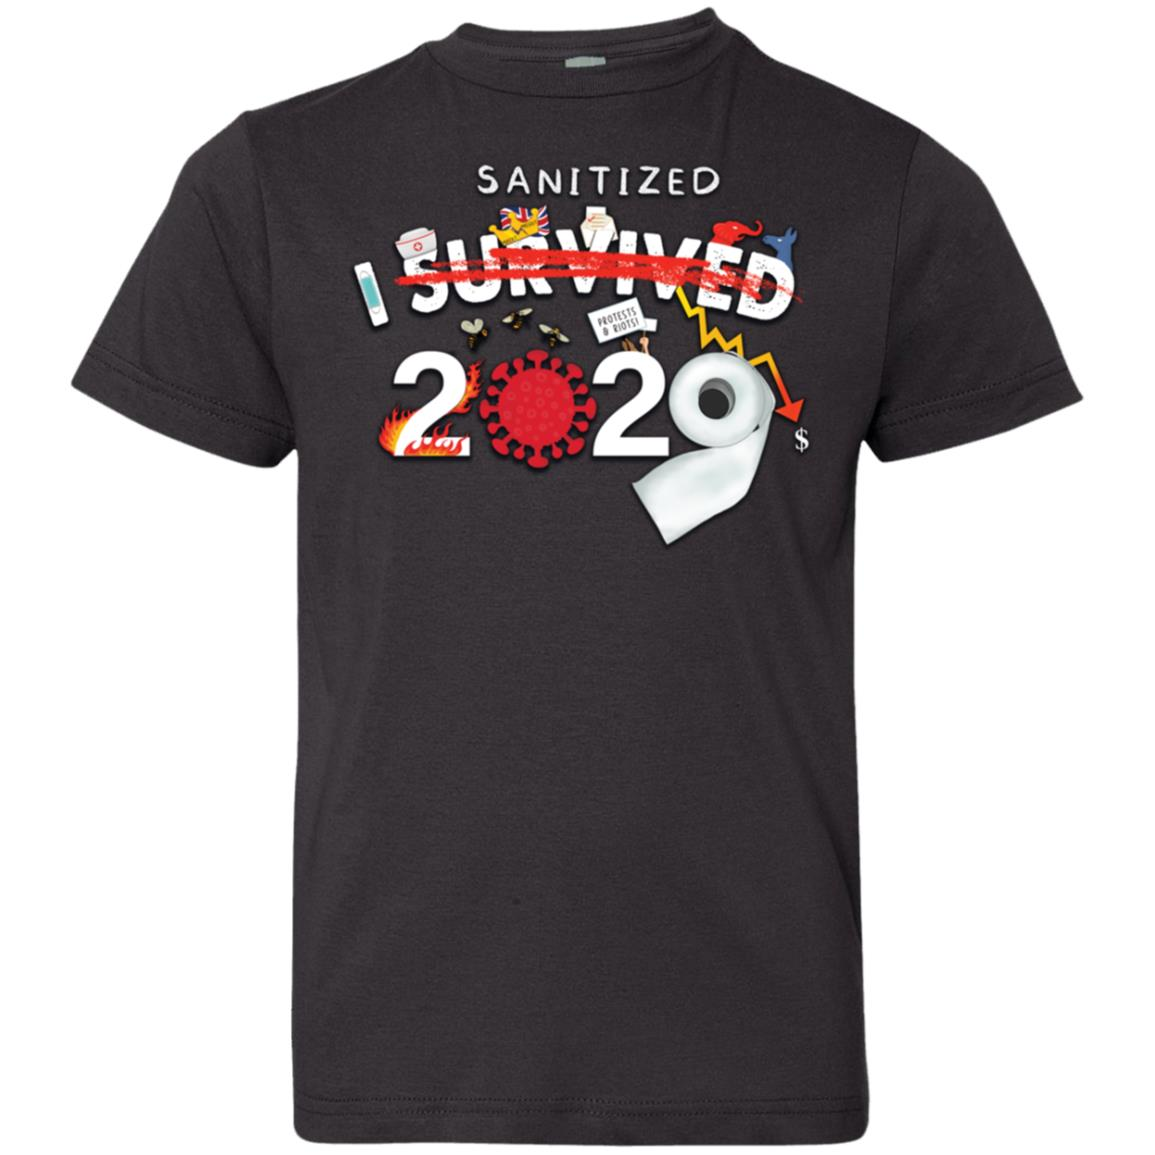 I Sanitized 2020 - Youth Jersey T-Shirt